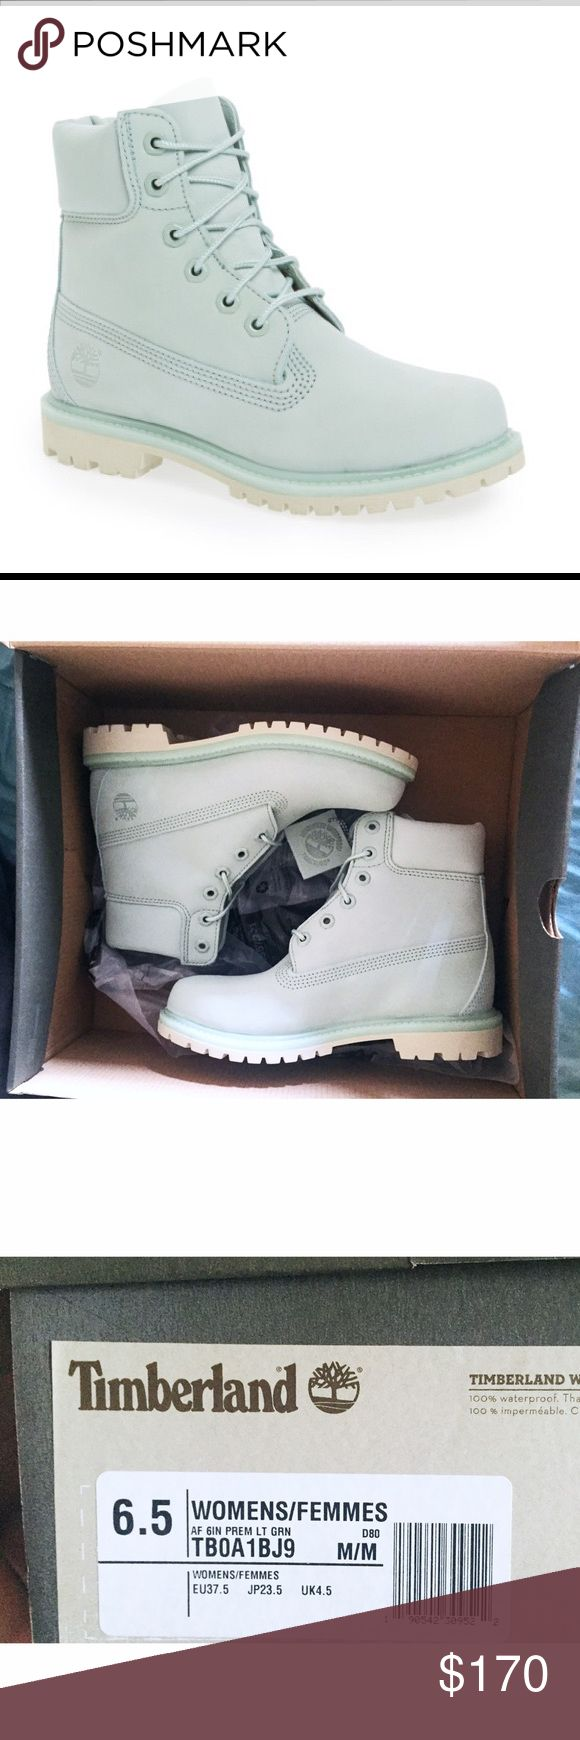 """NWT Timberland 6"""" Limited Edition Nubuck Boots These are 100% authentic light green nubuck 6"""" leather women's boots. They are brand new in box and are in pristine condition! Price is firm because it is the cheapest online & I love these boots, and don't really want to sell them but have doctors bills. Women's size 6.5. Timberland Shoes"""